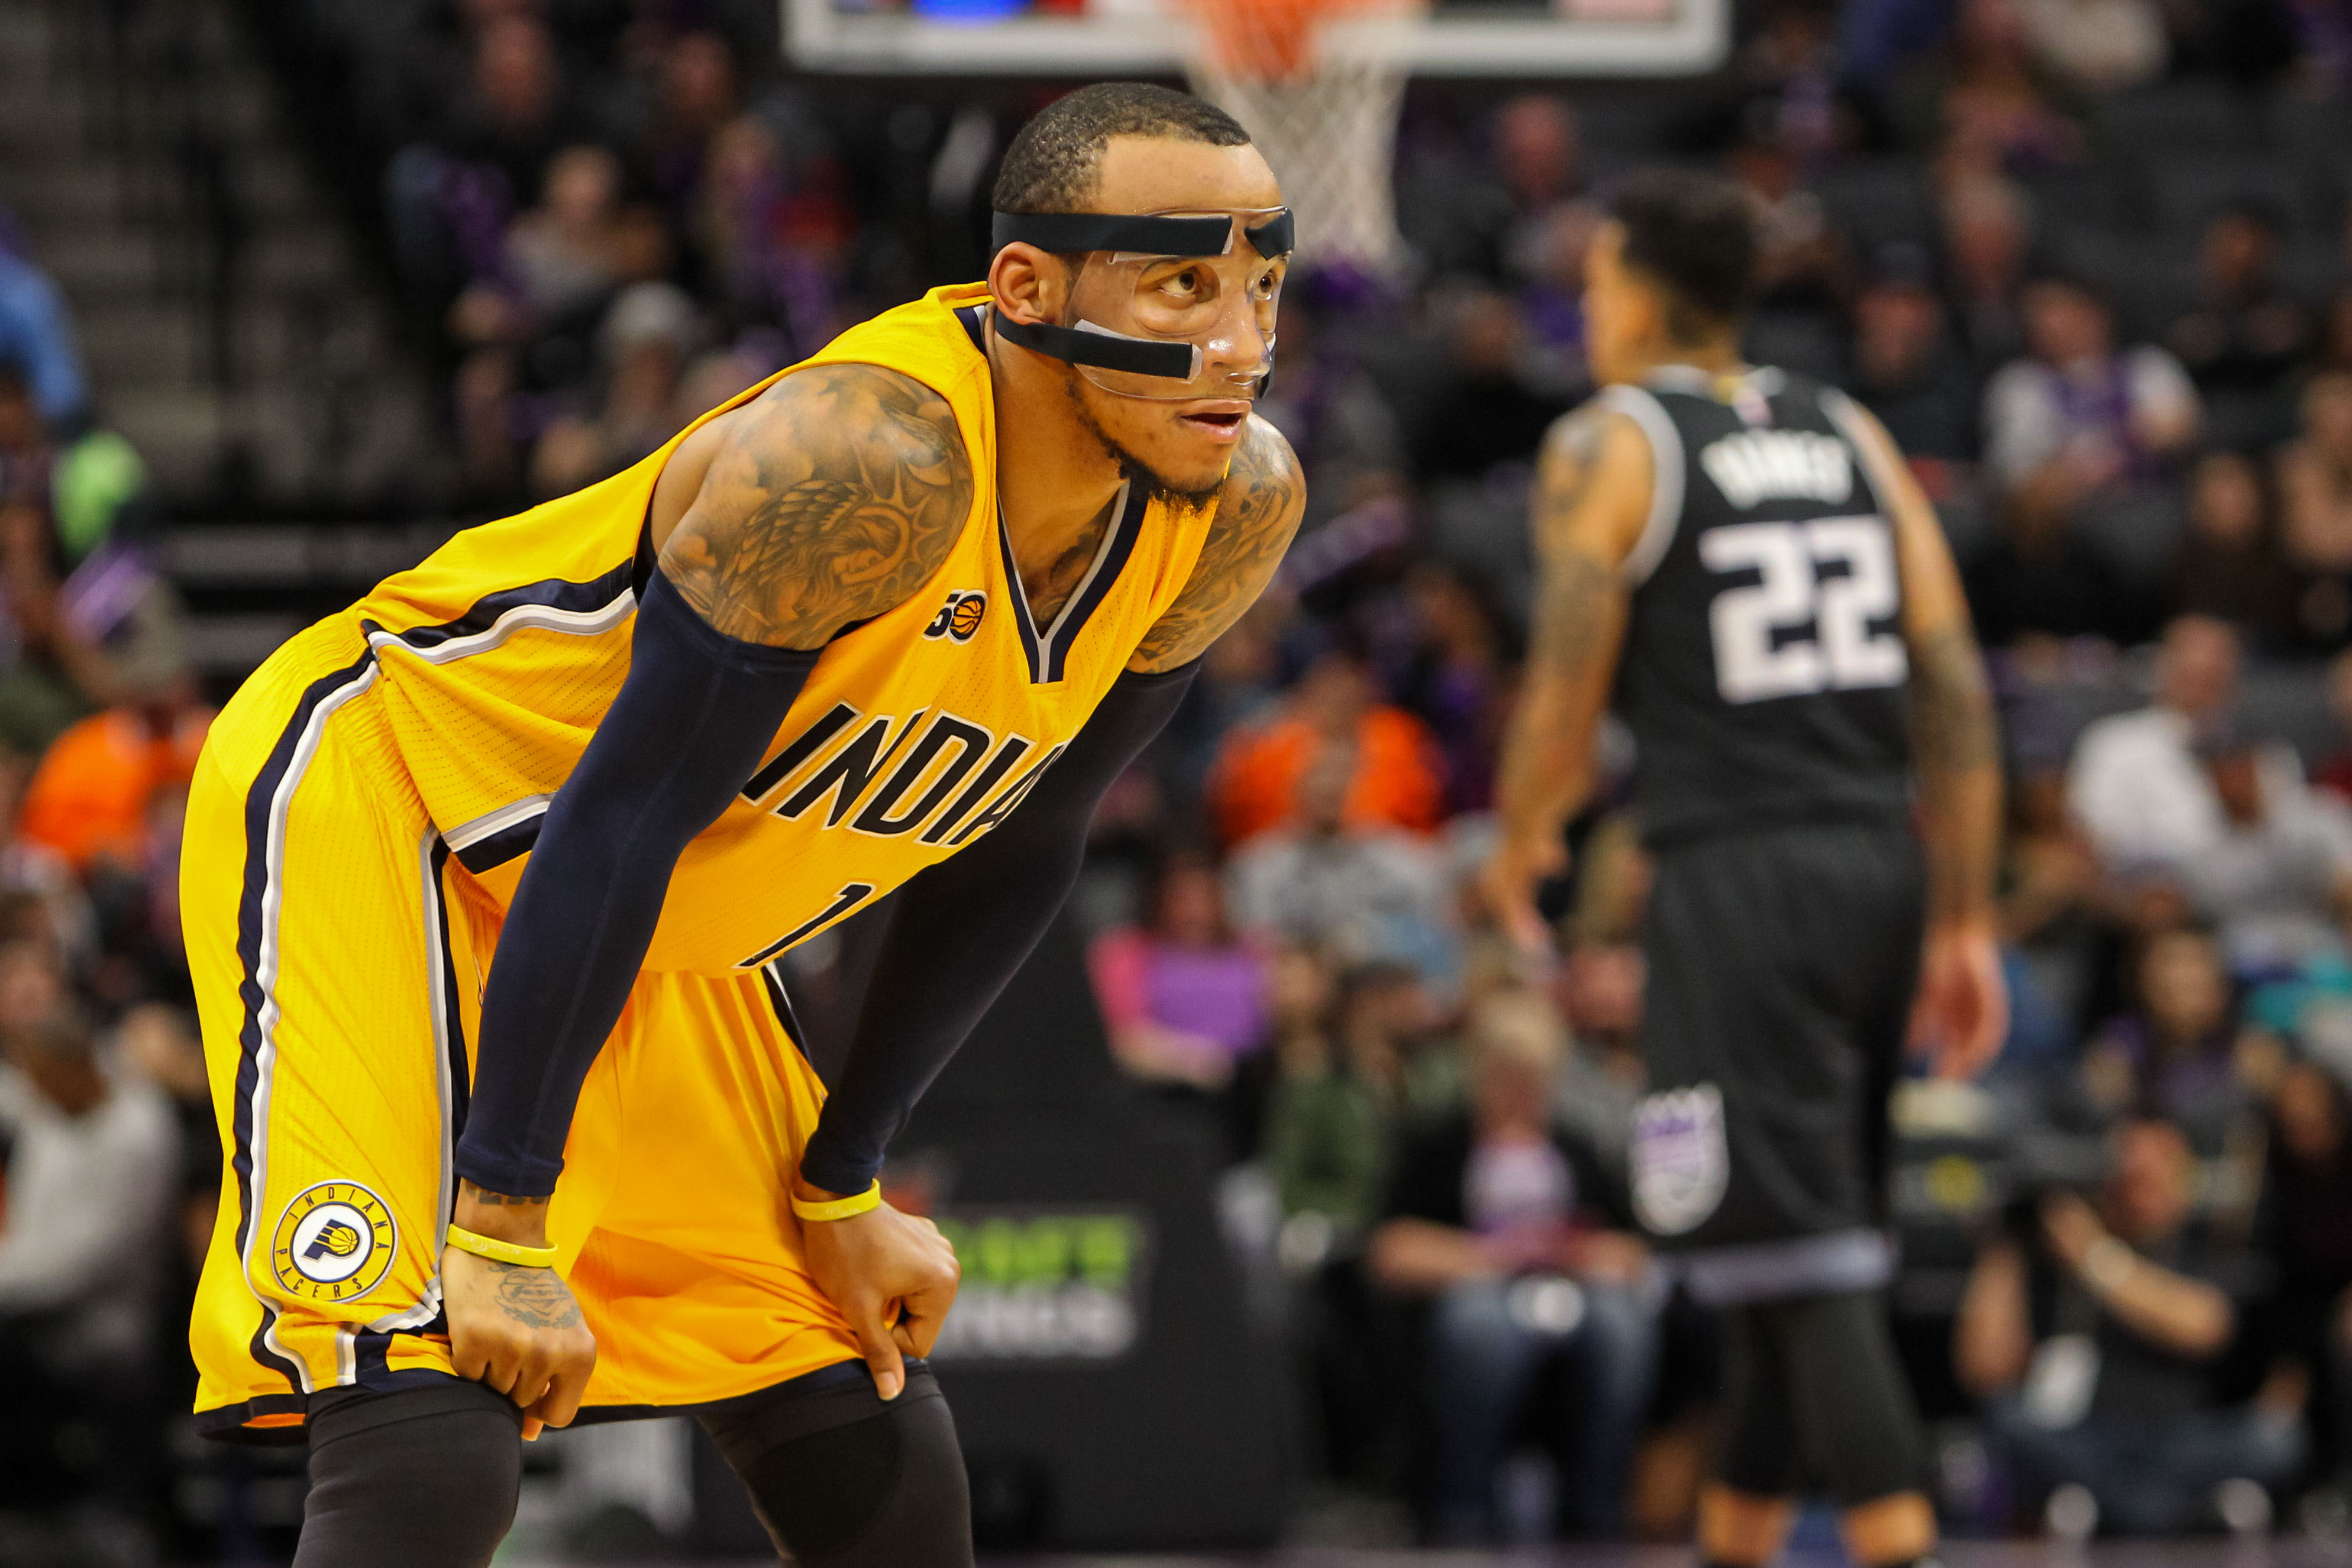 Jan 18, 2017; Sacramento, CA, USA; Indiana Pacers guard Monta Ellis (11) during the fourth quarter against the Sacramento Kings at Golden 1 Center. The Pacers defeated the Kings 106-100. Mandatory Credit: Sergio Estrada-USA TODAY Sports